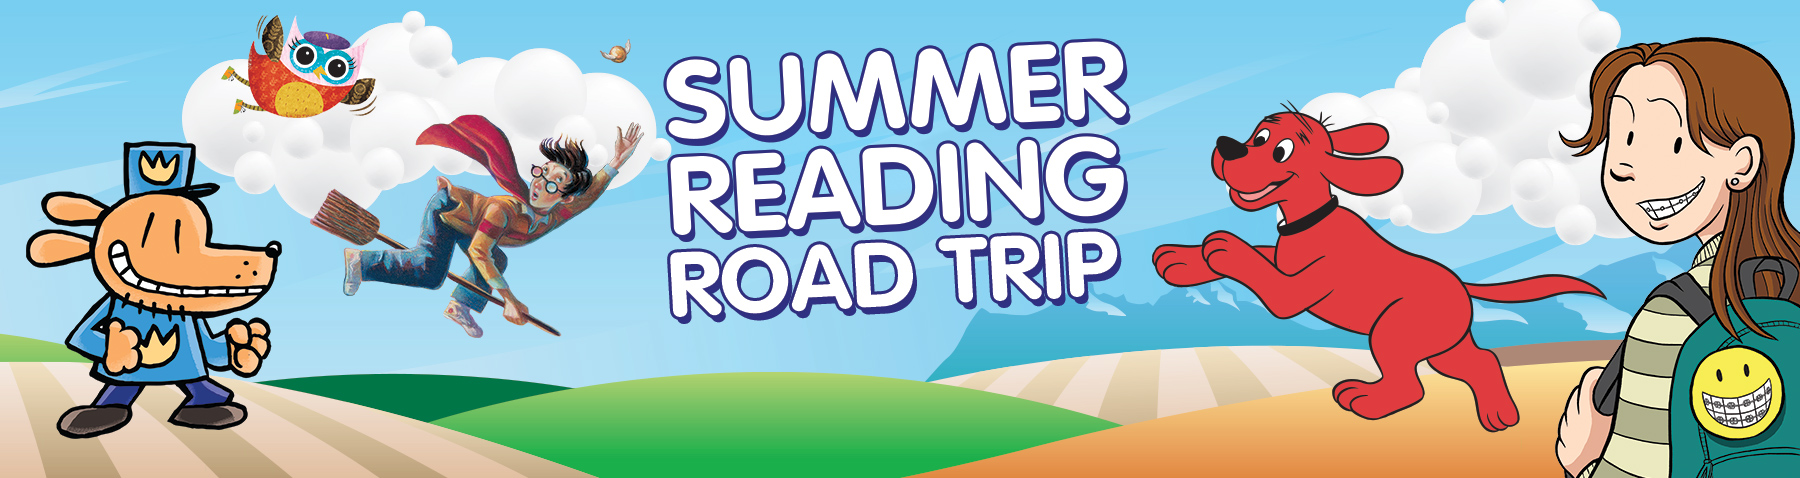 Northeast Road Trip >> Summer Reading Road Trip Northeast